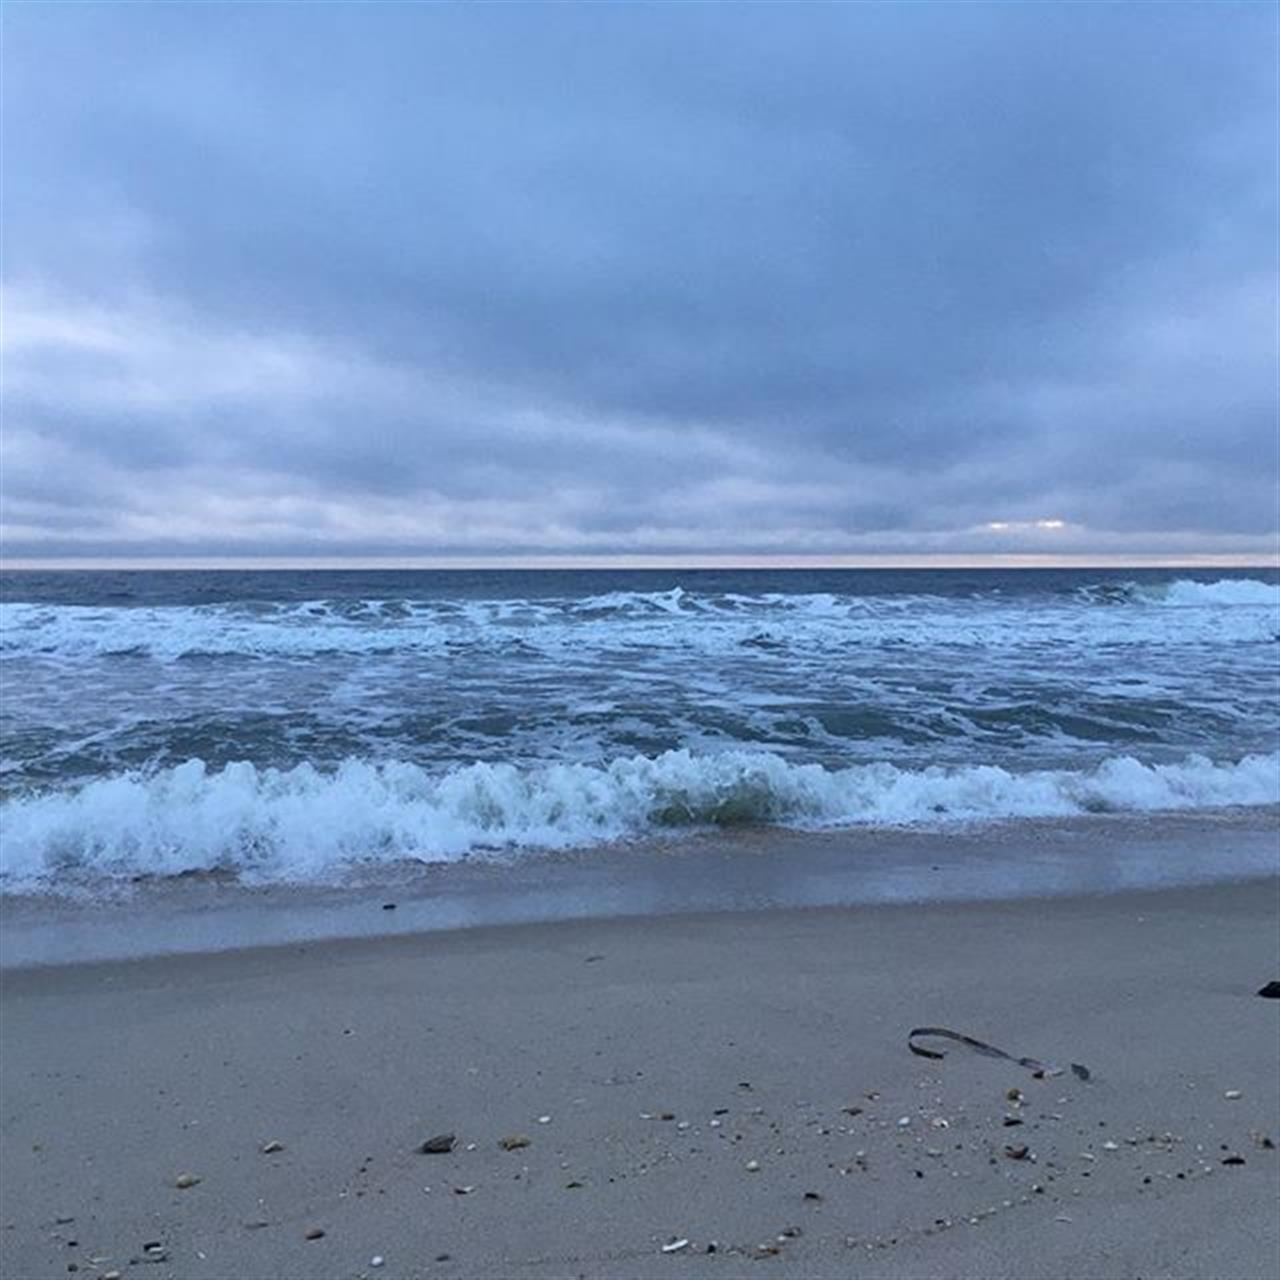 A nice cool gray morning at the beach... #goodmorning #nj #beaches #sunrise #jshn